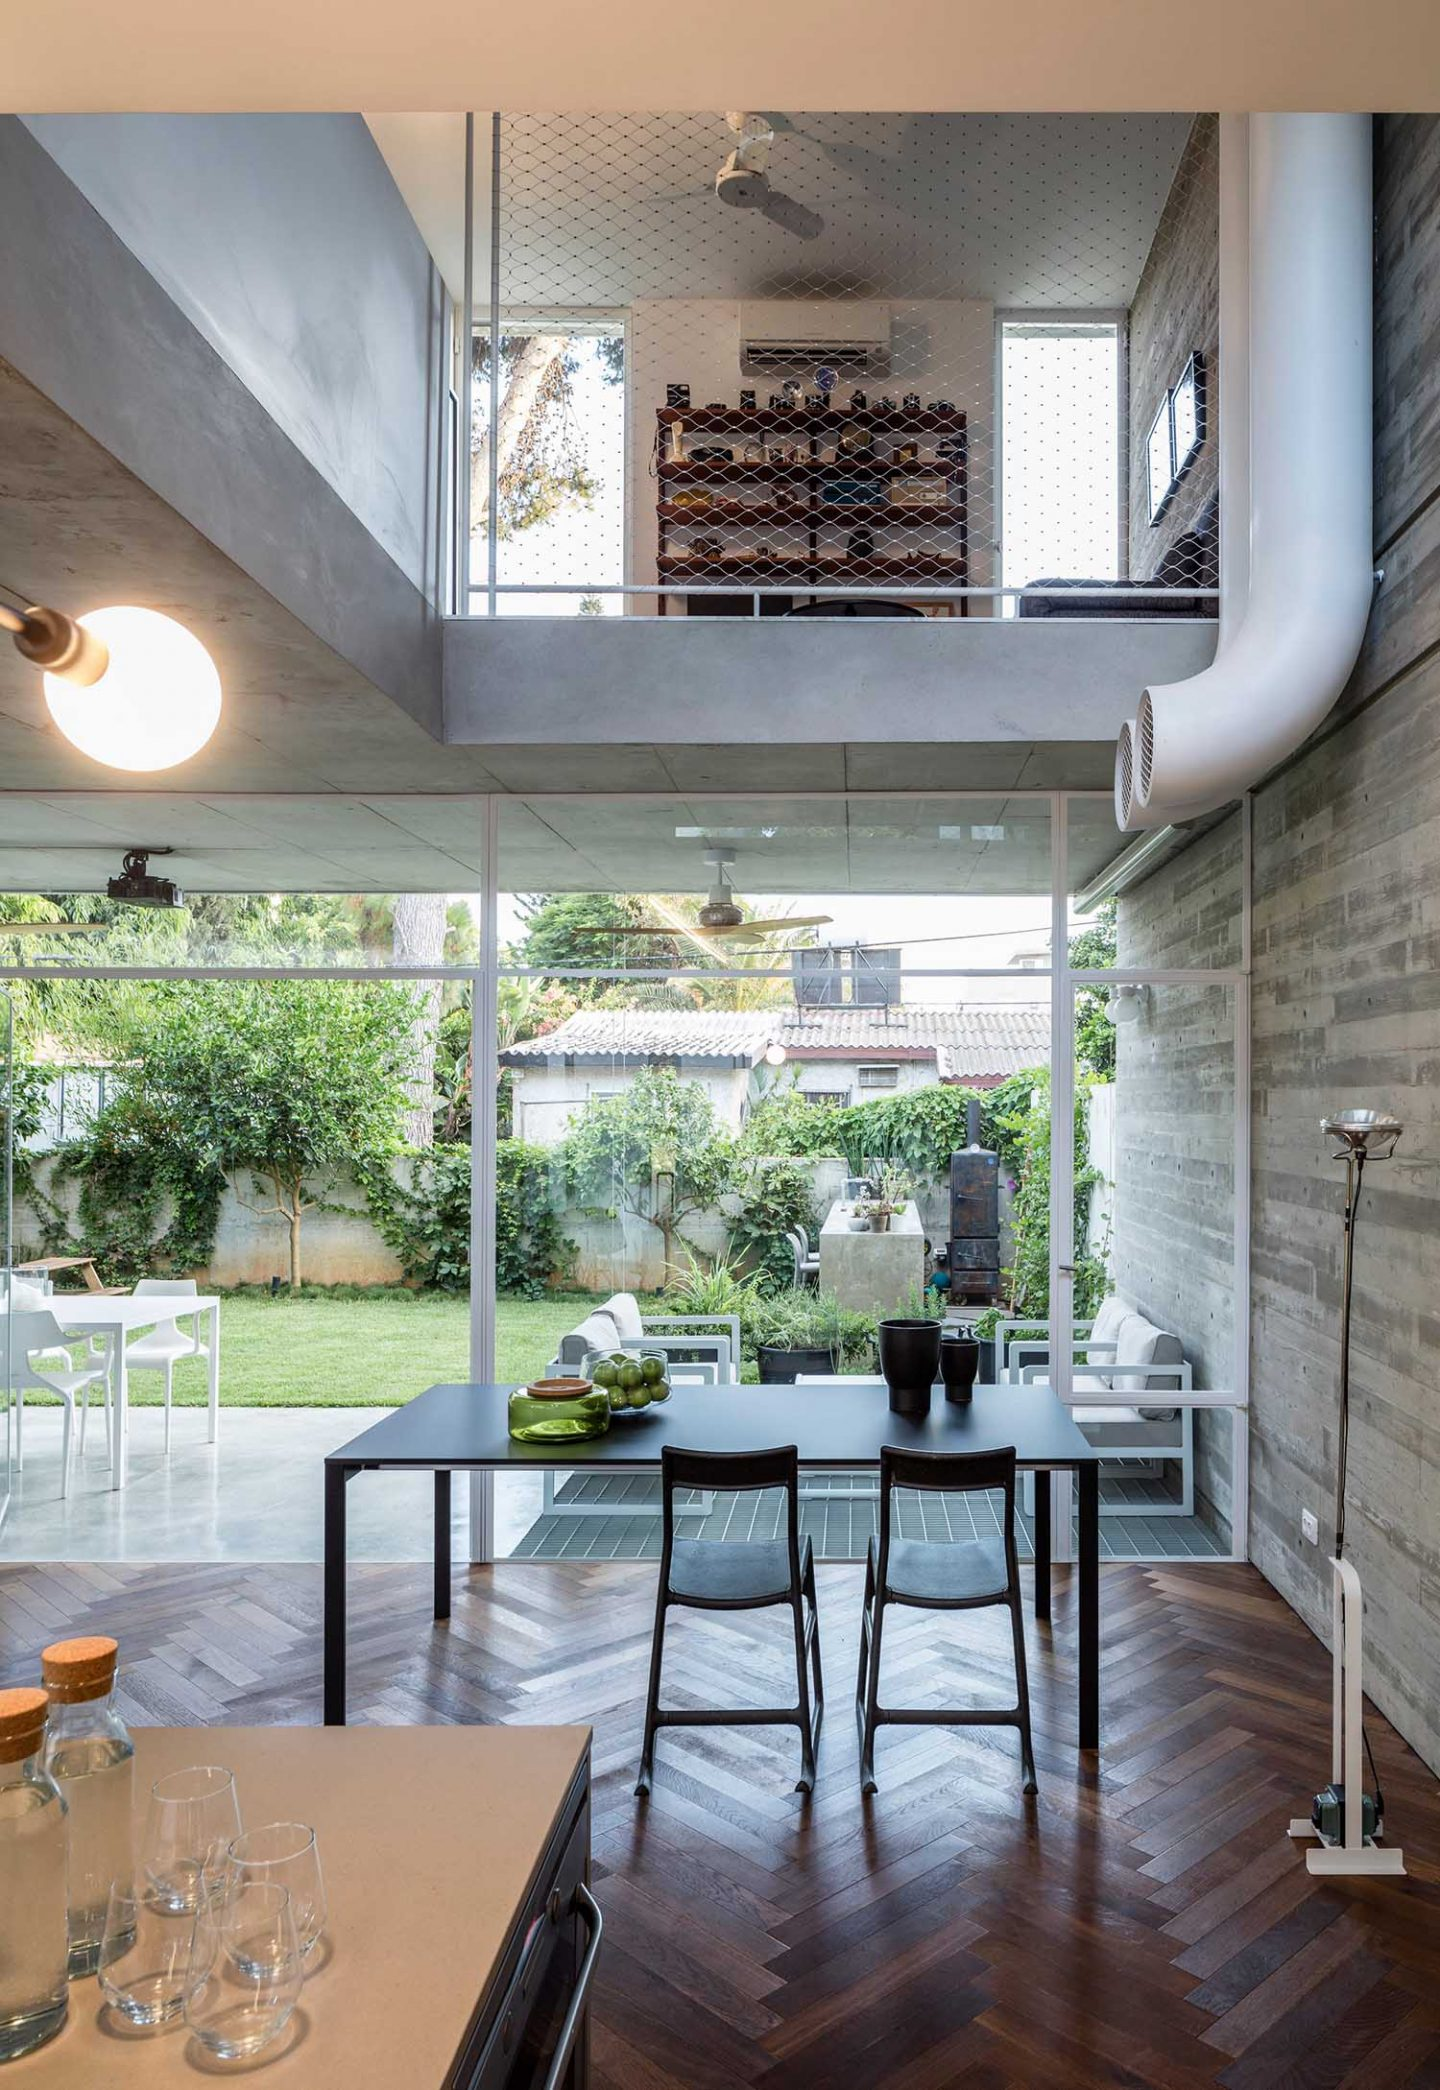 iGNANT_Architecture_3322_Studio_The_Suspended_Patio_House_5